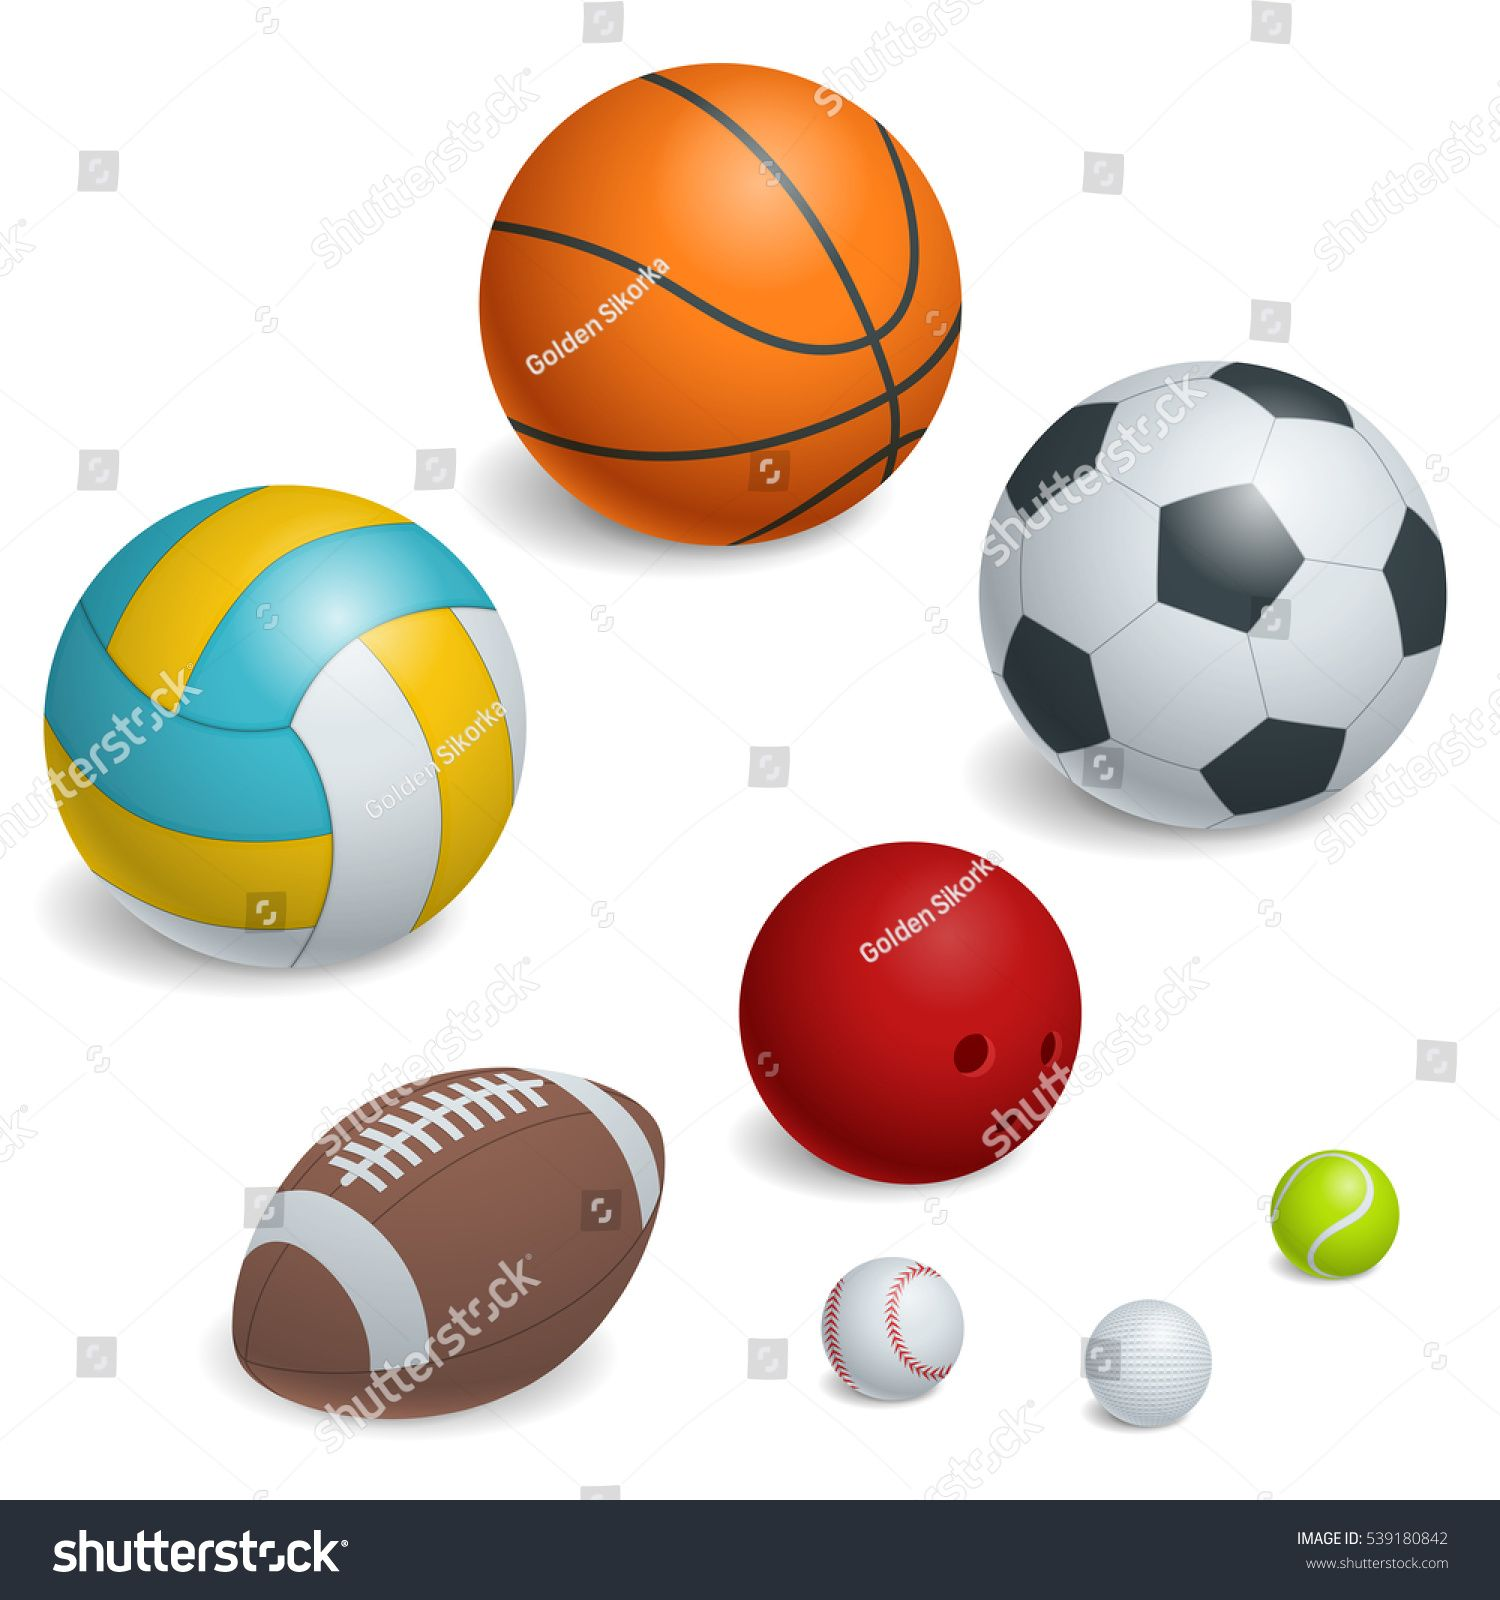 Isometric Sports Balls Set Illustration Of A Set Of Popular Sports Balls And Bowls Equipment For Football Soccer Rugby Tennis Sports Balls Ball Isometric